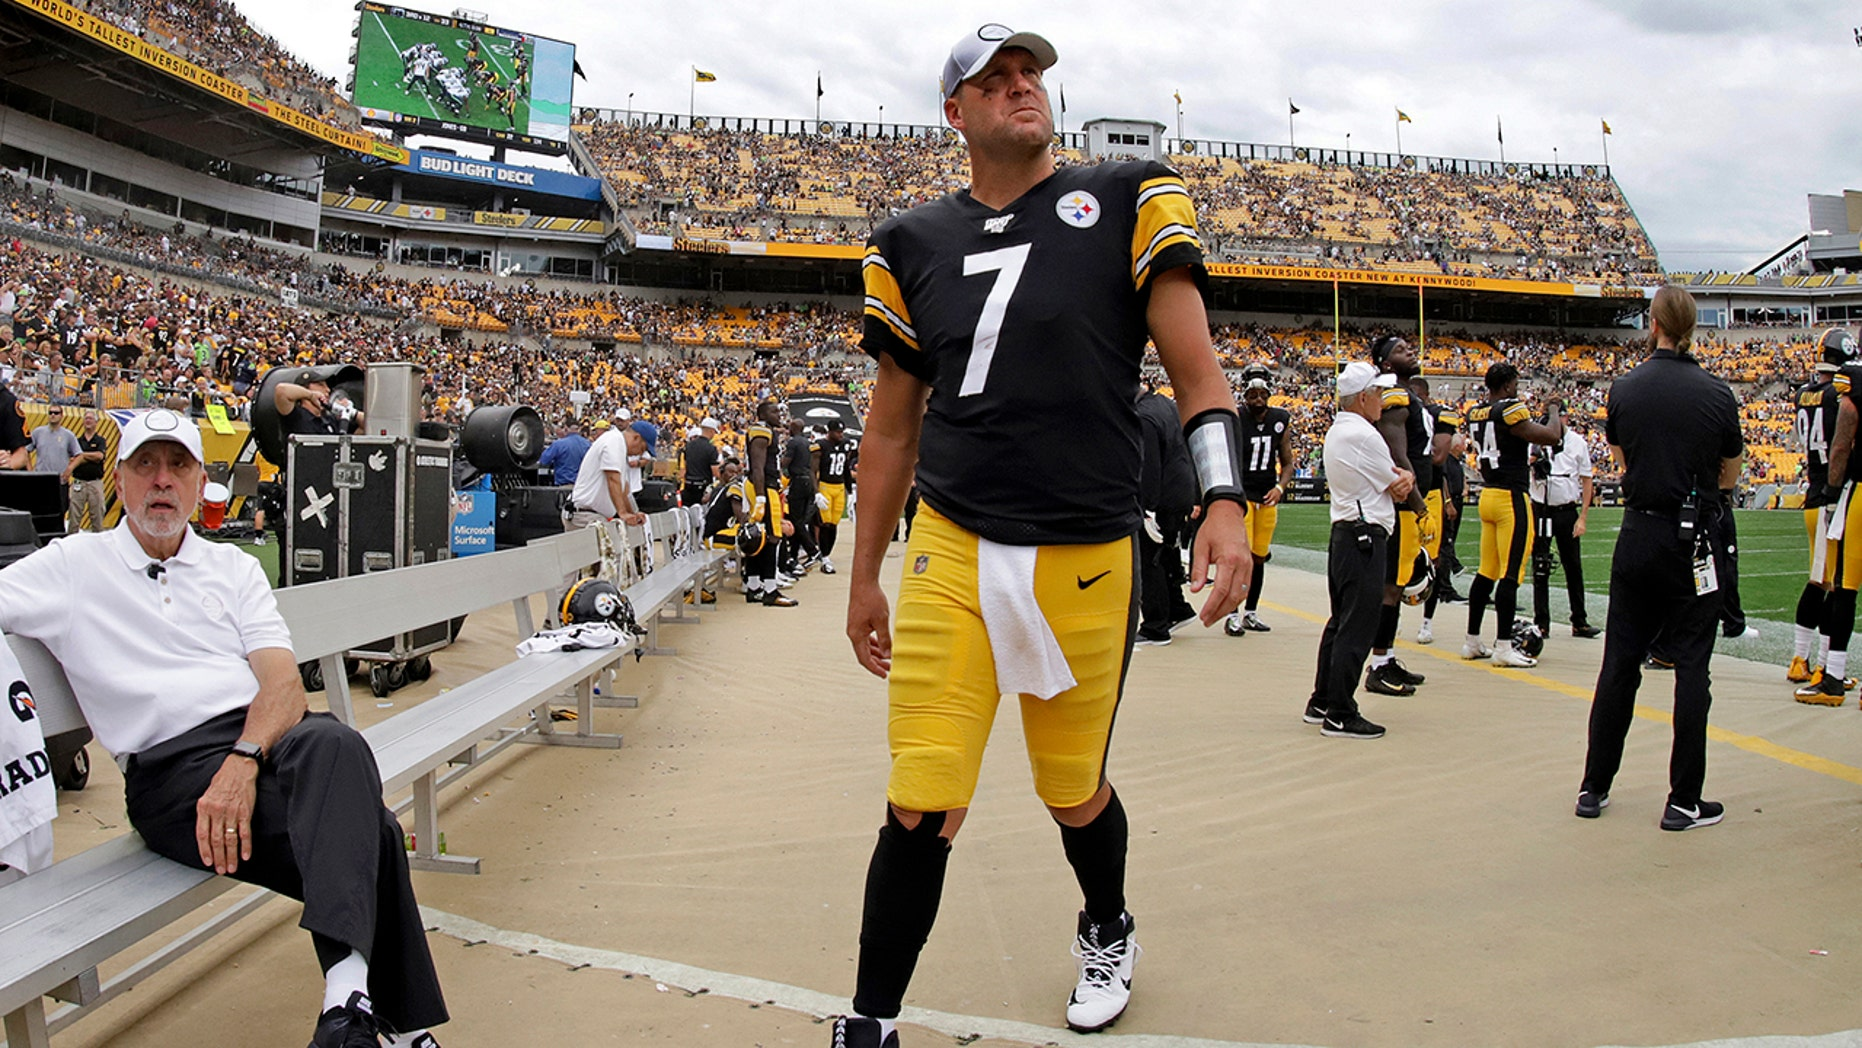 Pittsburgh Steelers quarterback Ben Roethlisberger (7) walks off the field as time runs out in a loss to the Seattle Seahawks in an NFL football game in Pittsburgh, Sunday, Sept. 15, 2019. (AP Photo/Gene J. Puskar)